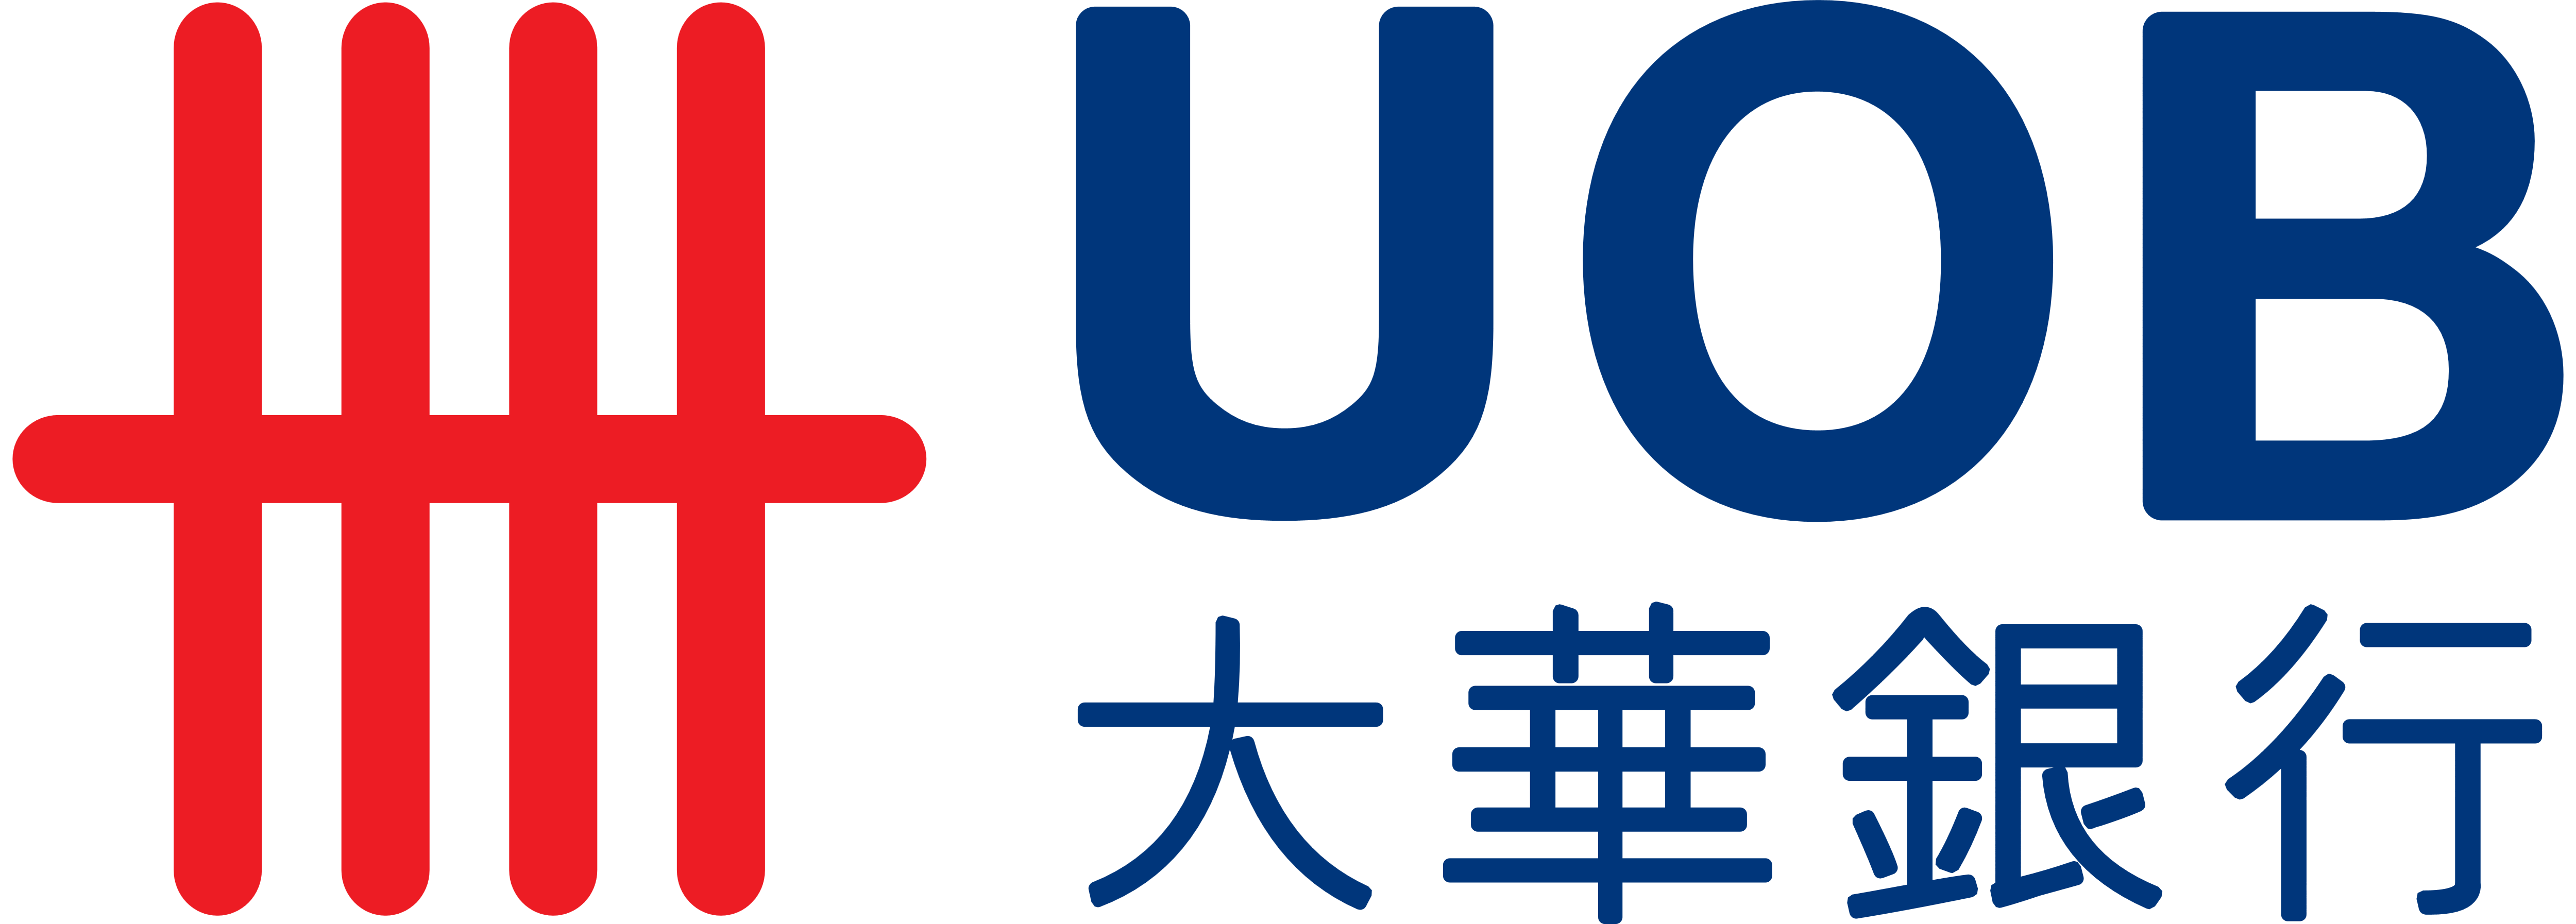 united overseas bank  uob logos download paypal verified logo vector paypal payment logo vector